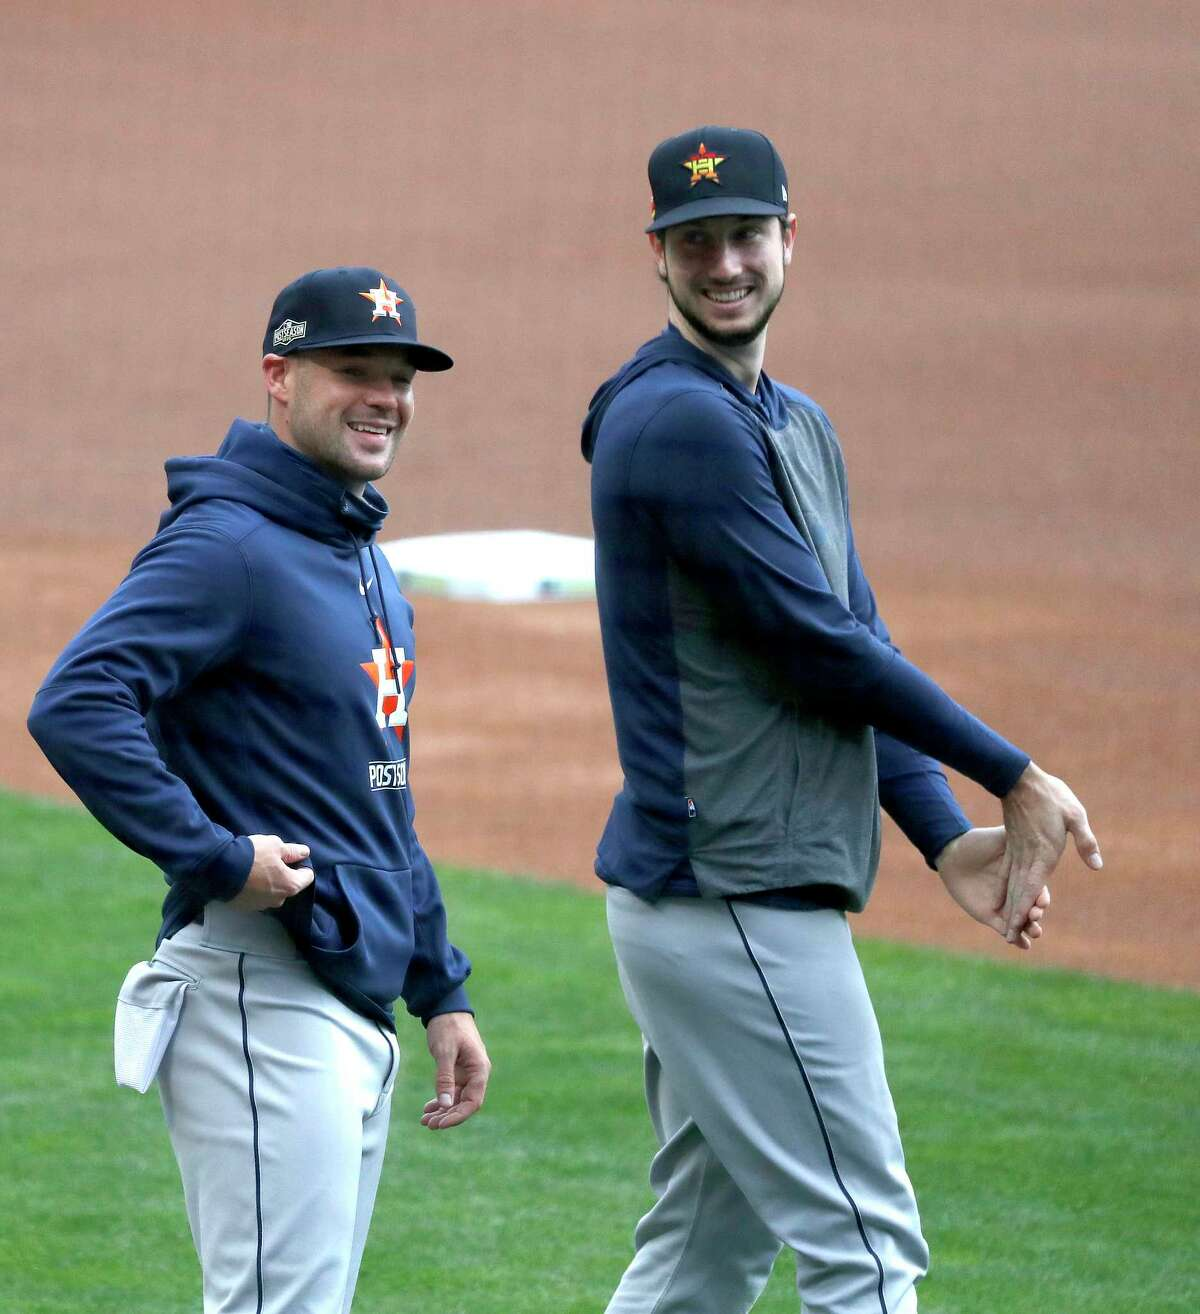 Houston Astros Chas McCormick smiles with the rest of the team as they warmed up during batting practice before the start of an MLB Wild Card game at Target Field, Tuesday, September 29, 2020, in Minneapolis.